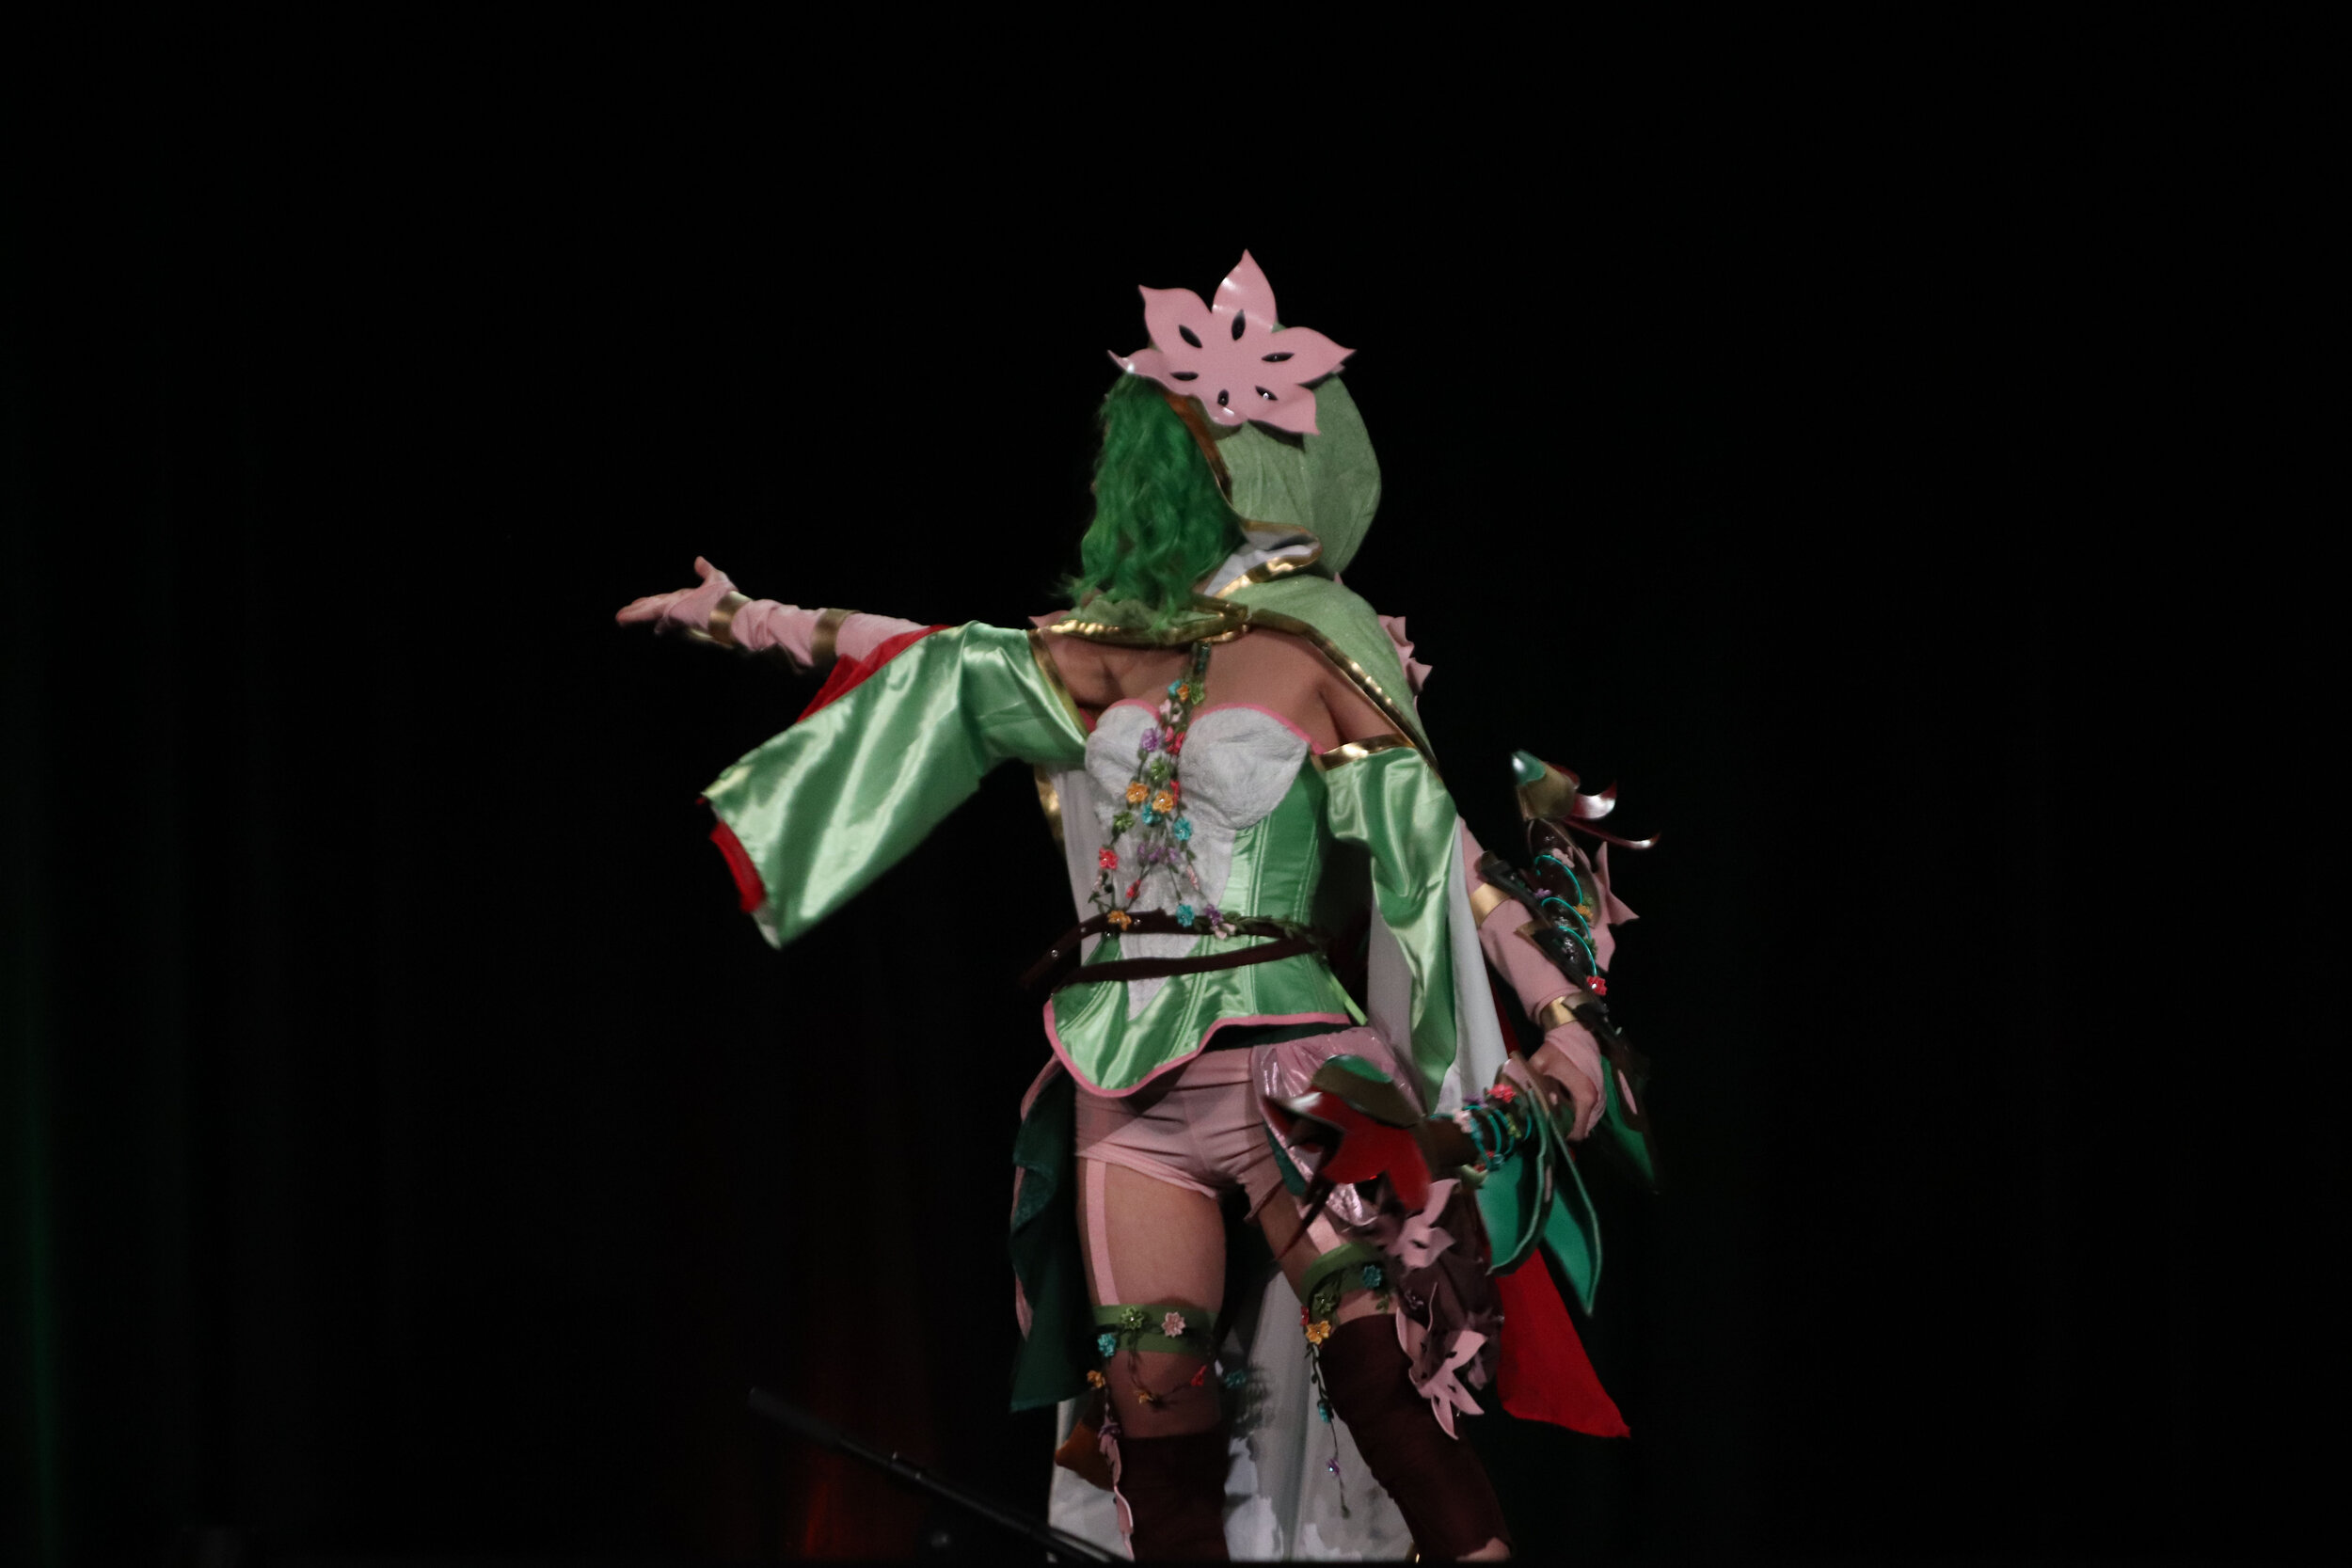 NDK Cosplay Contest 2019-227.jpg